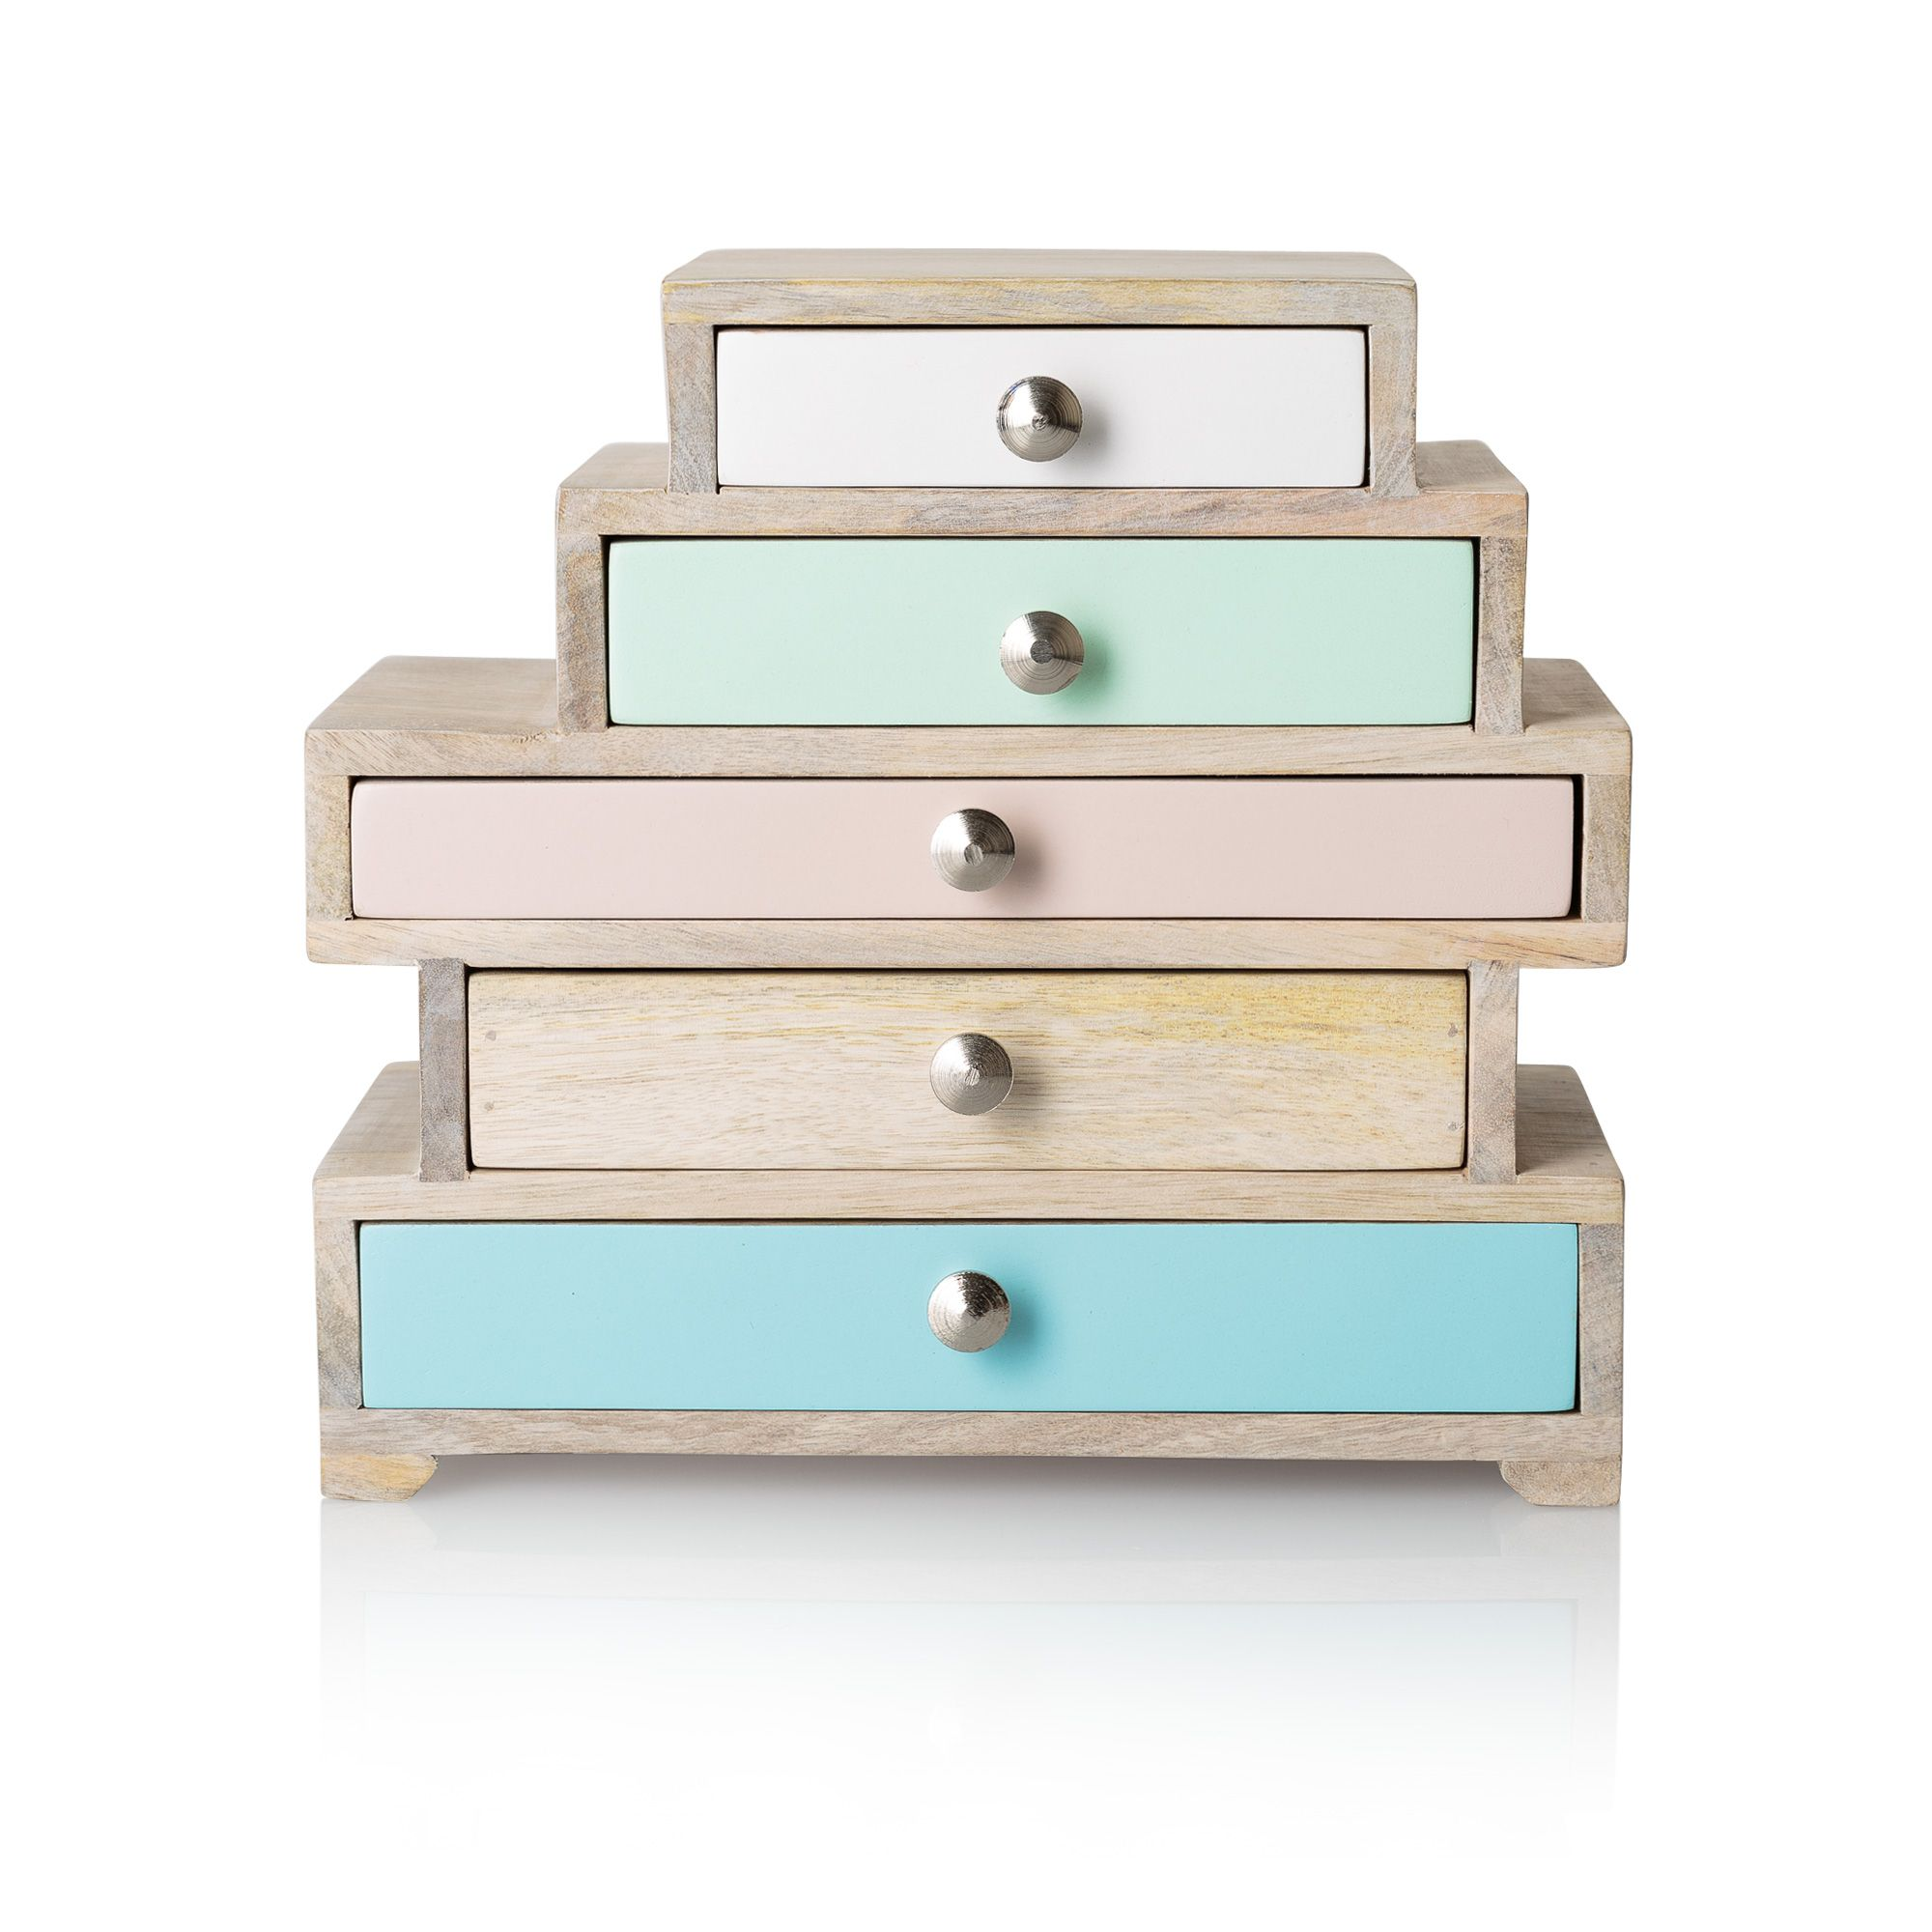 Eva Five Drawer Jewellery Box Dwelling Wooden Jewelry Boxes